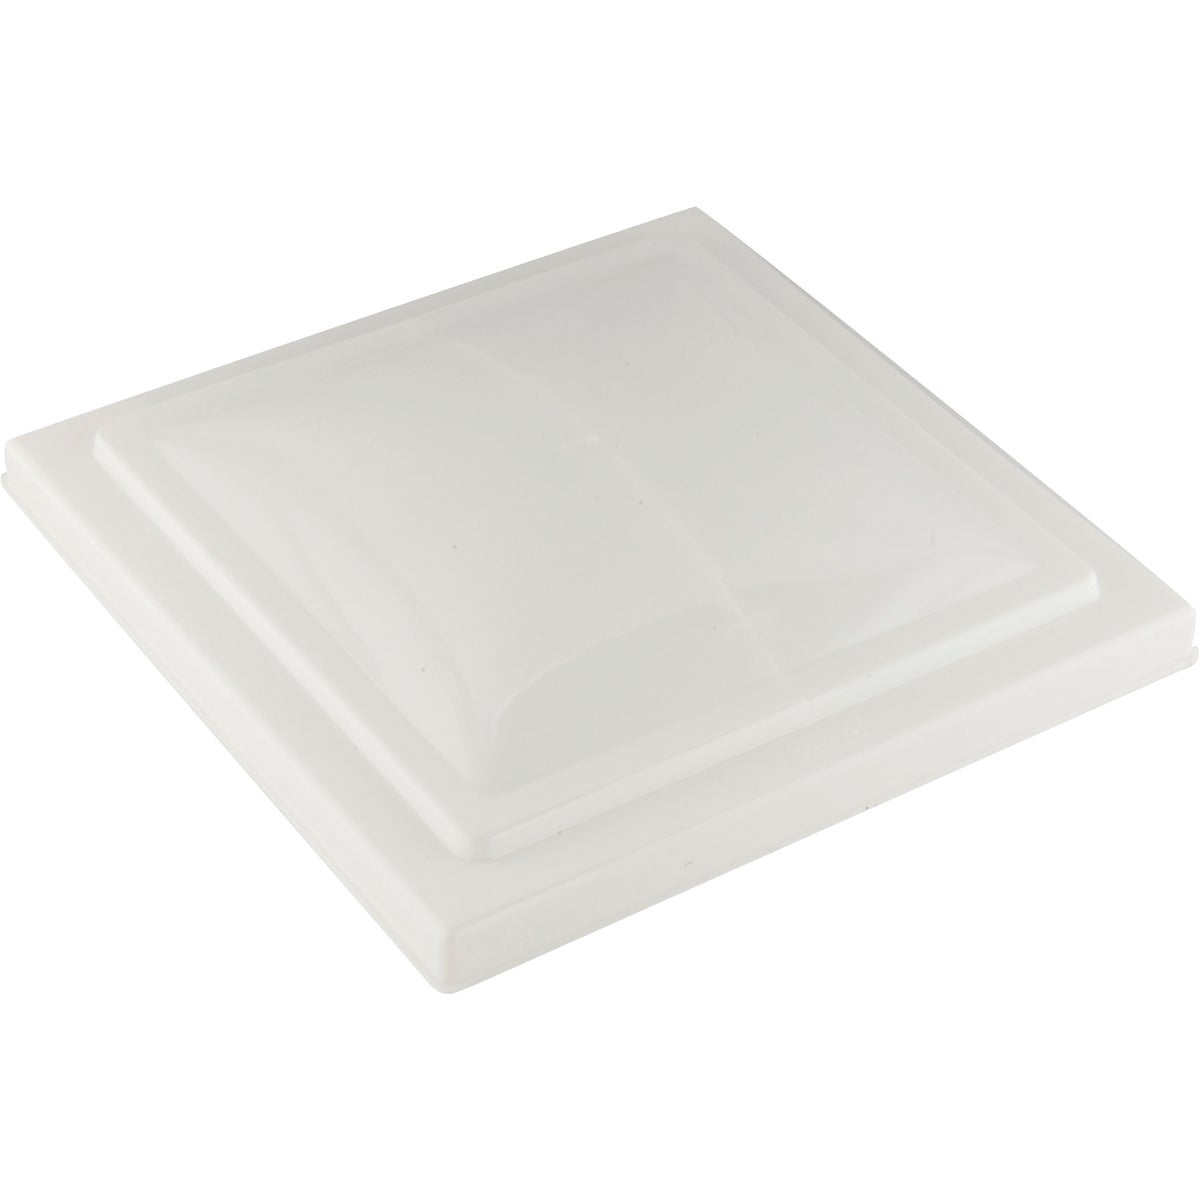 REPLACEMENT VENT LID